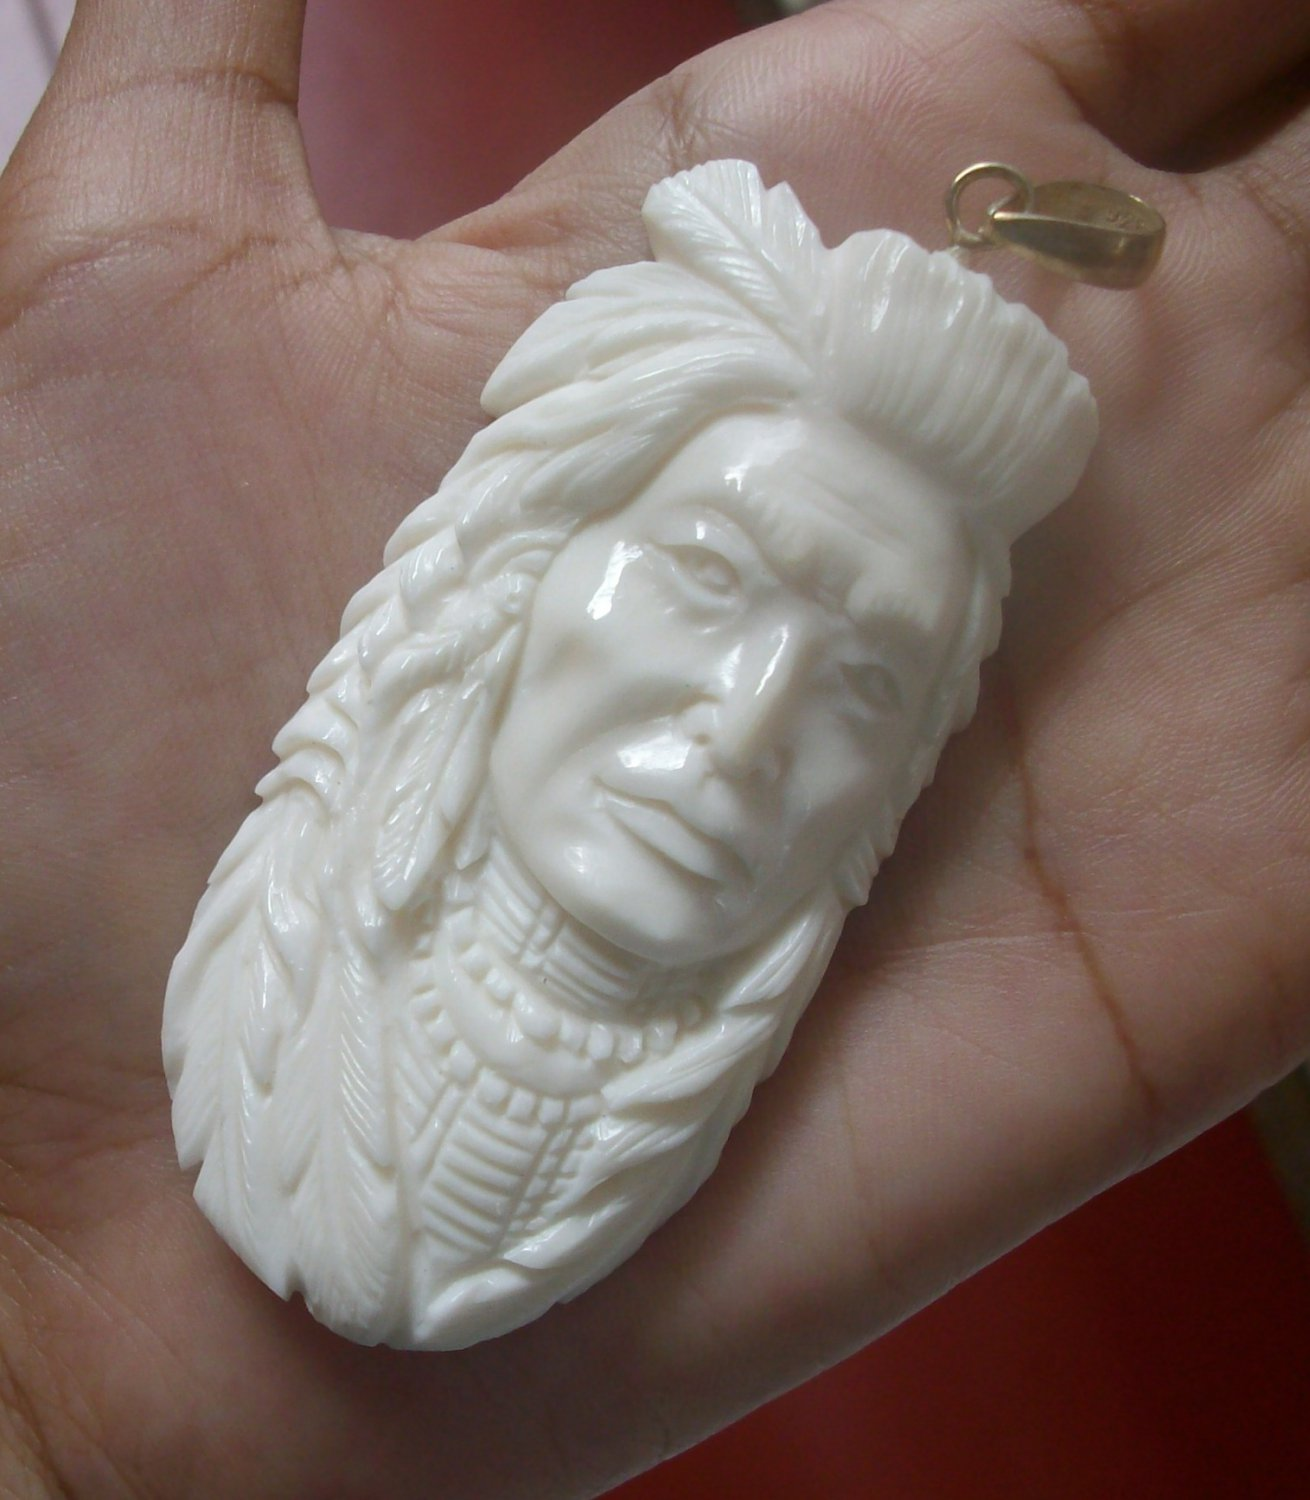 Bali Pendant Necklace INDIAN FACE Old From Buffalo Bone Carving With Silver Bail 925 #r168